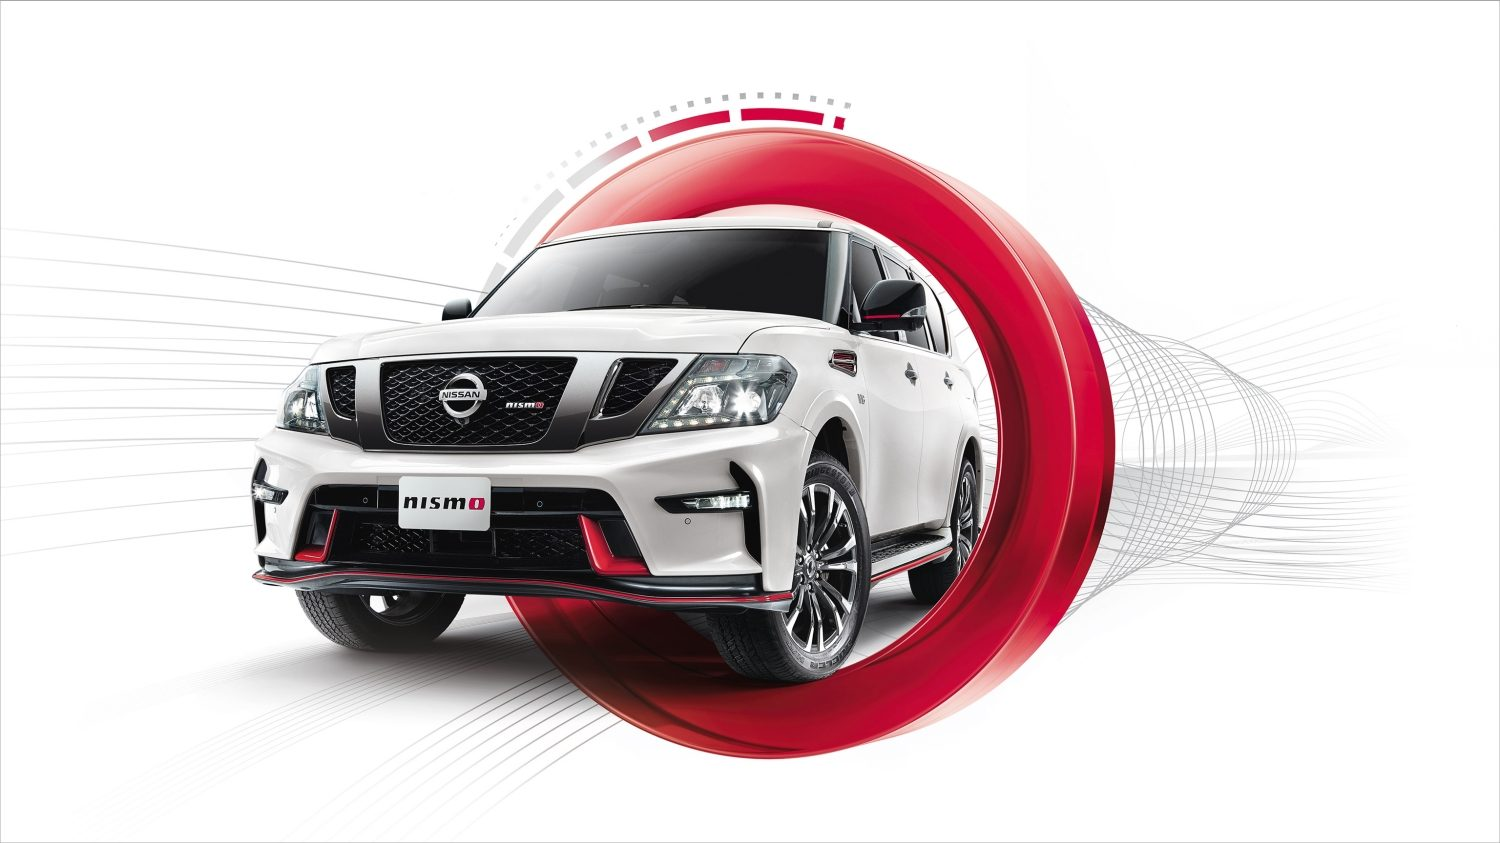 The 2016 Nissan Patrol NISMO